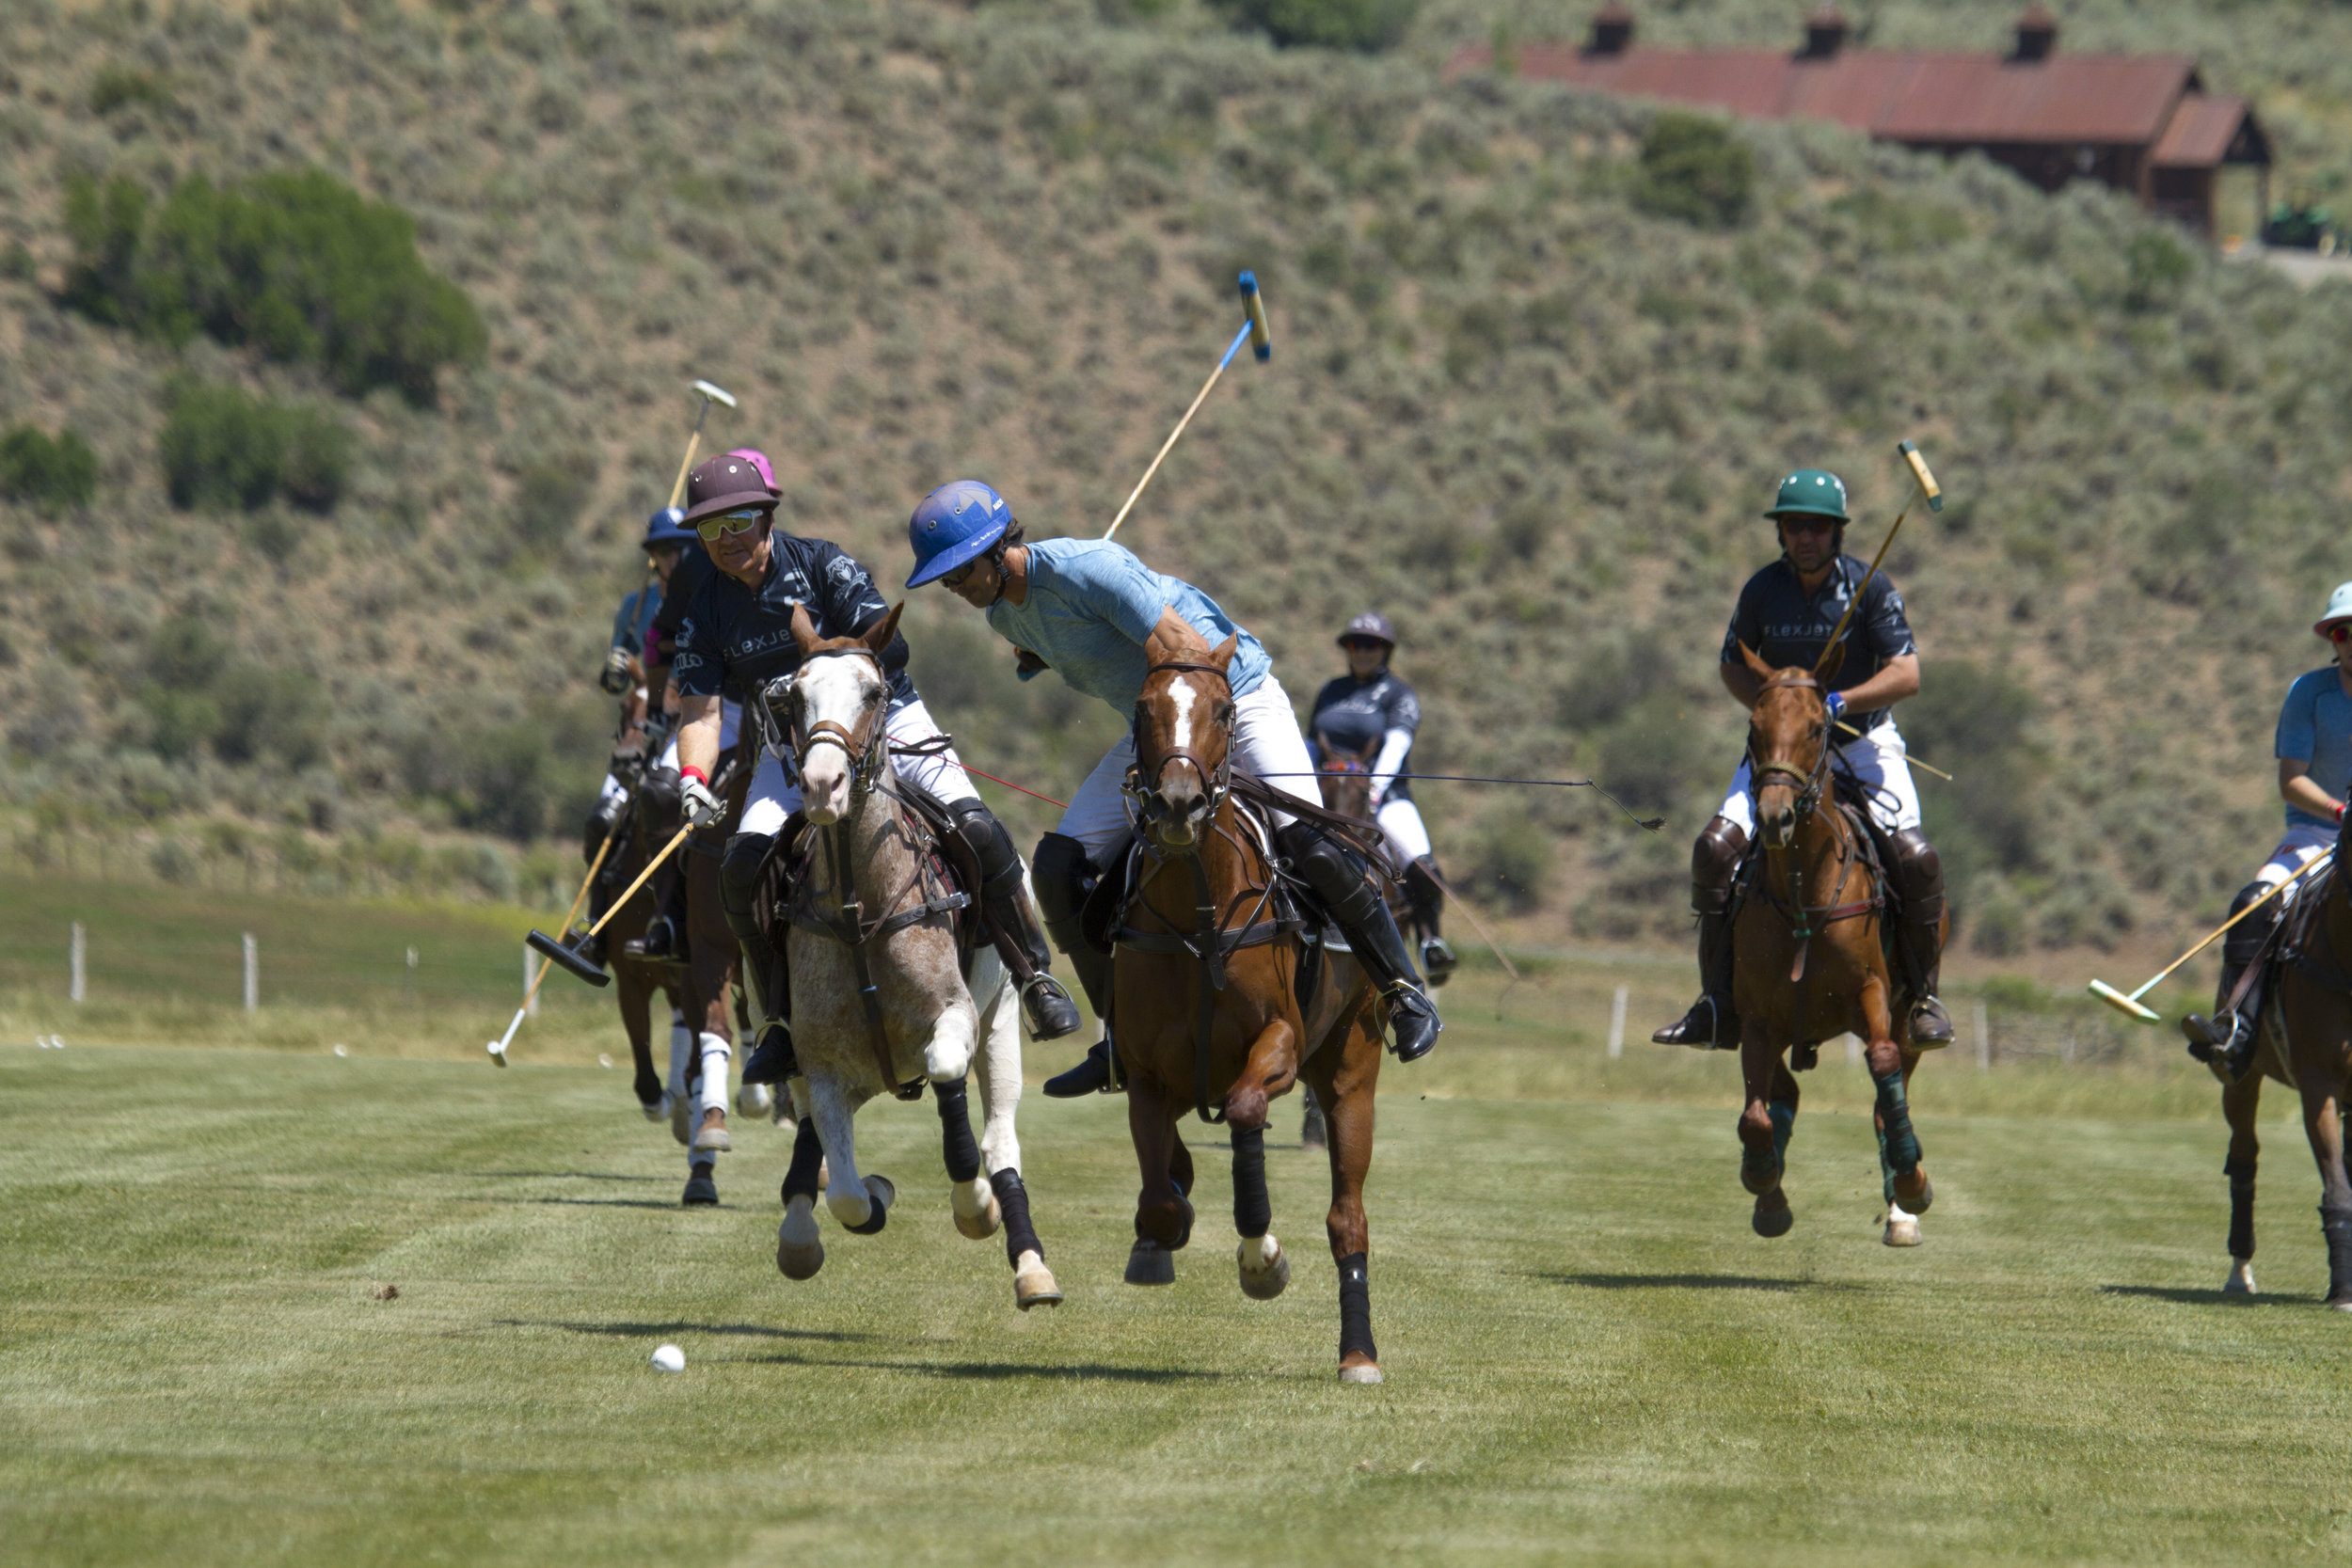 Nacho Figueras of Piocho goes for the big hit with Flexj.JPG